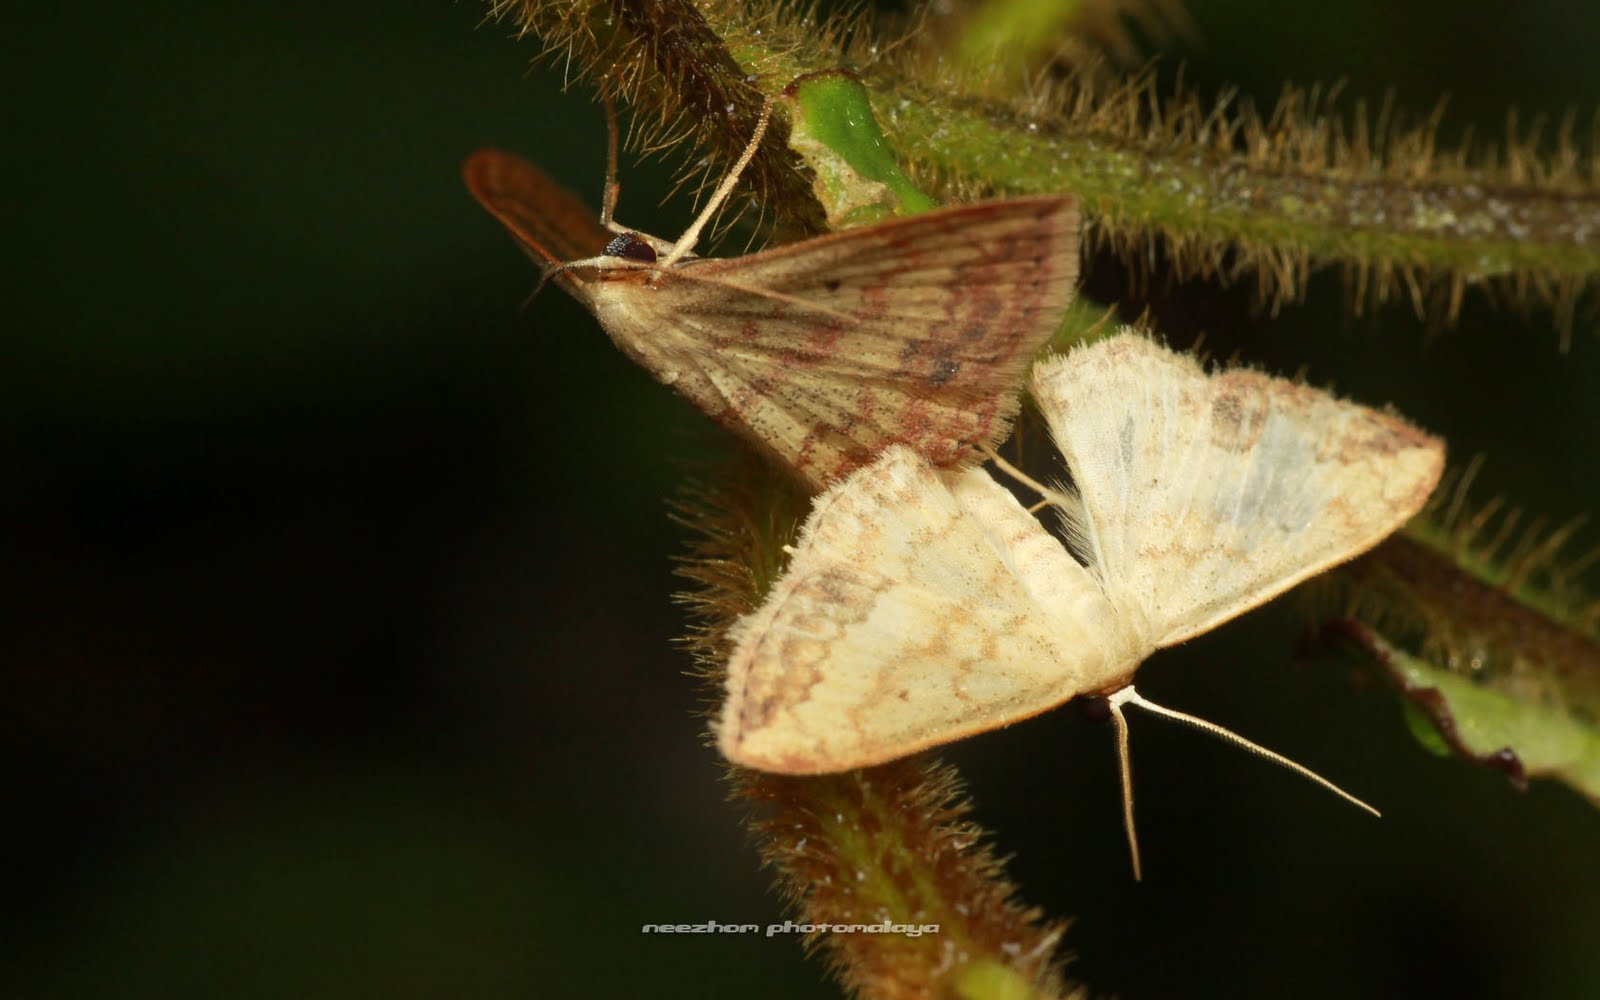 Moth mating - make love